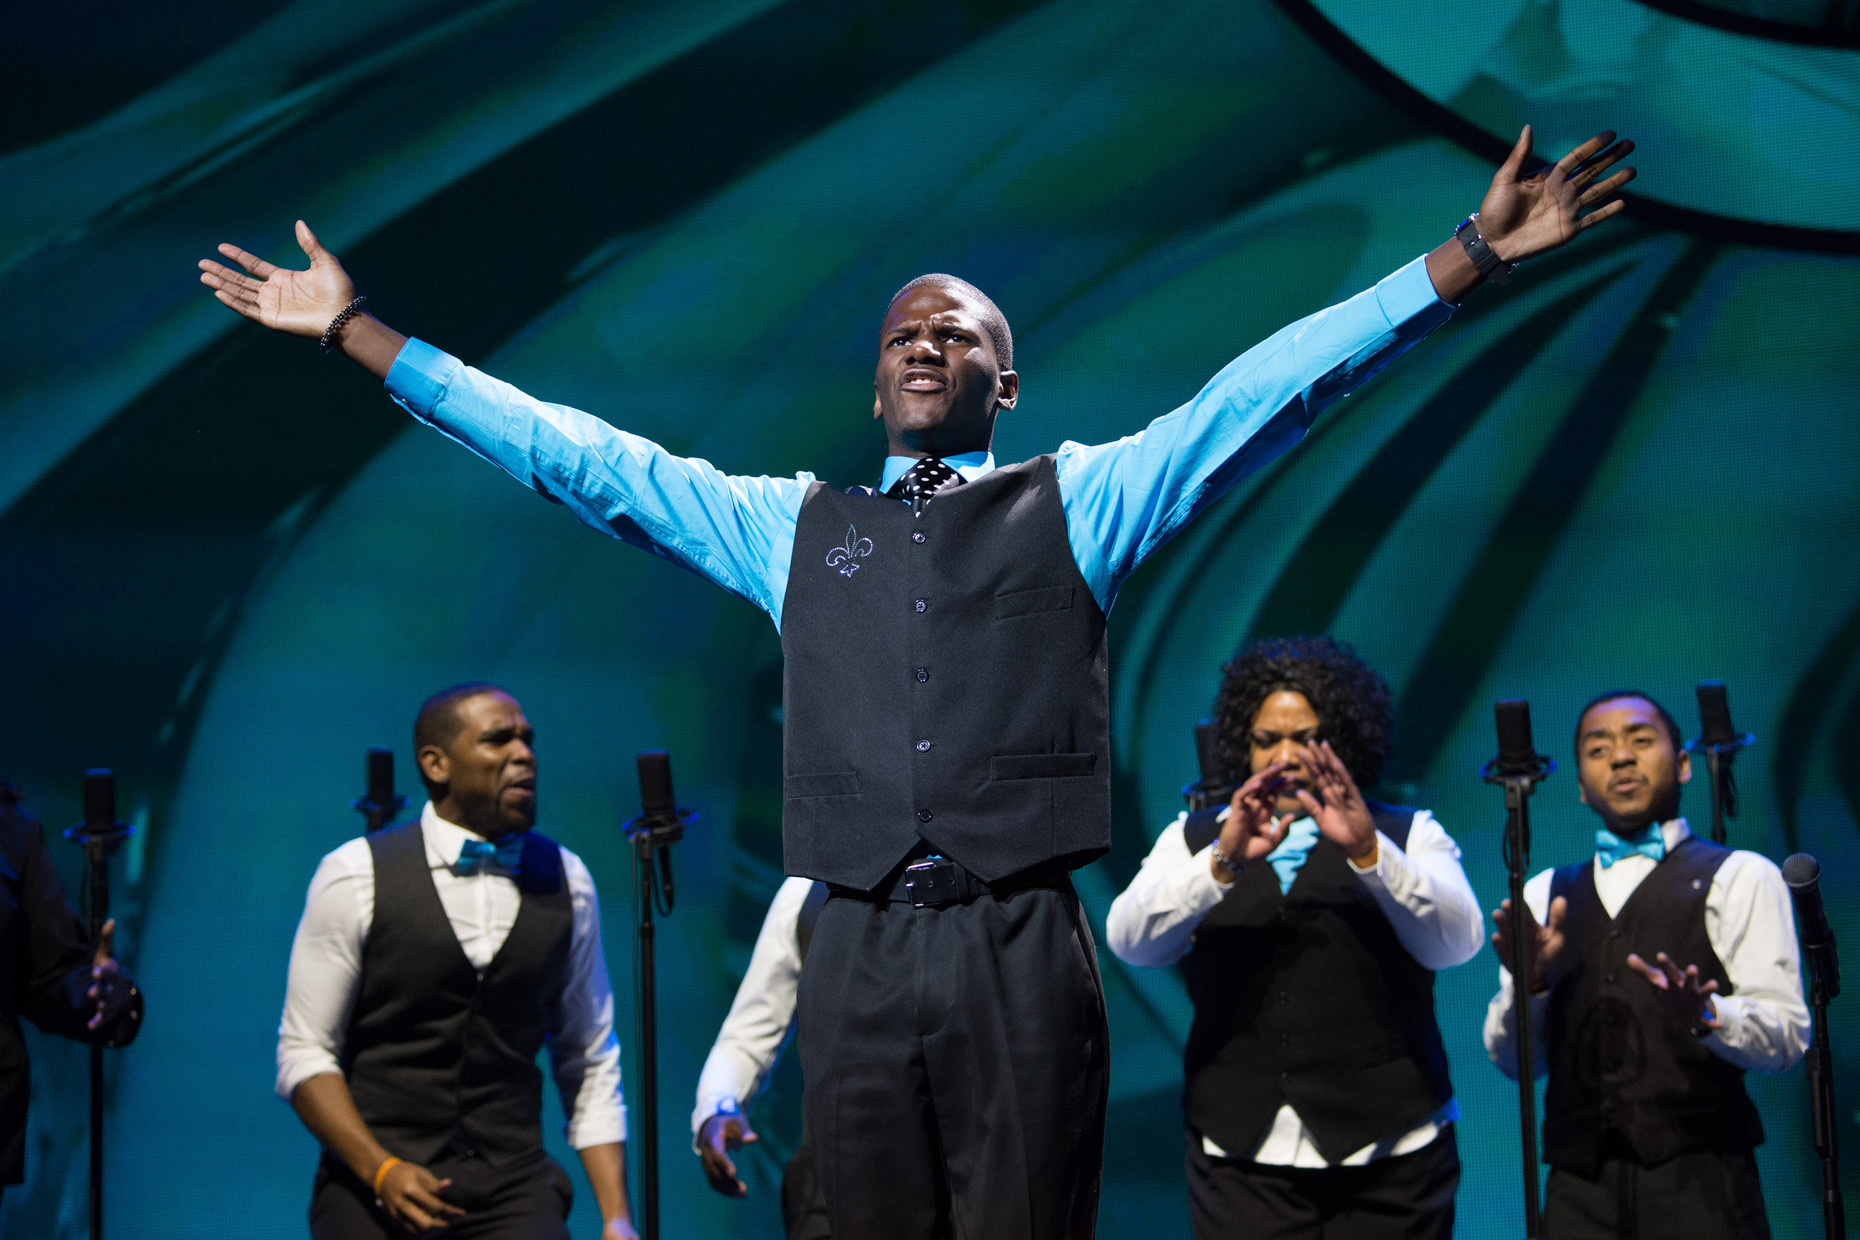 Gospel Choir Competition by Dallas editorial photographer Kevin Brown